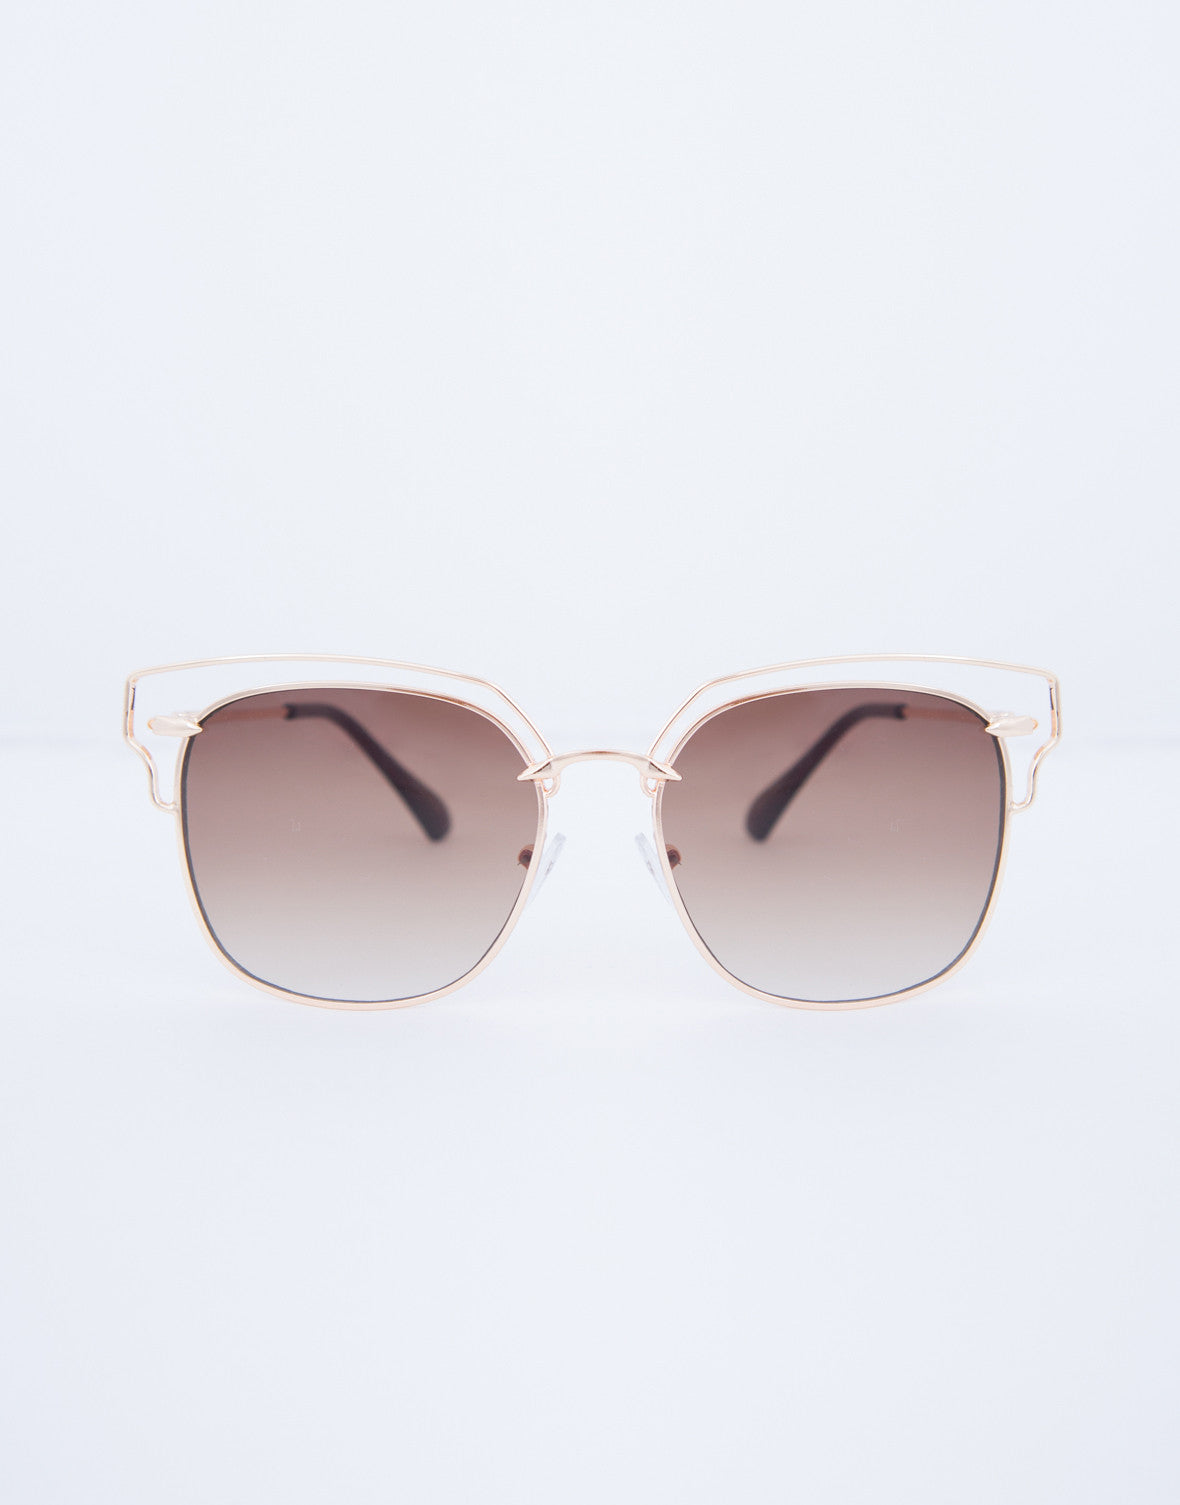 Framed Mirrored Sunnies